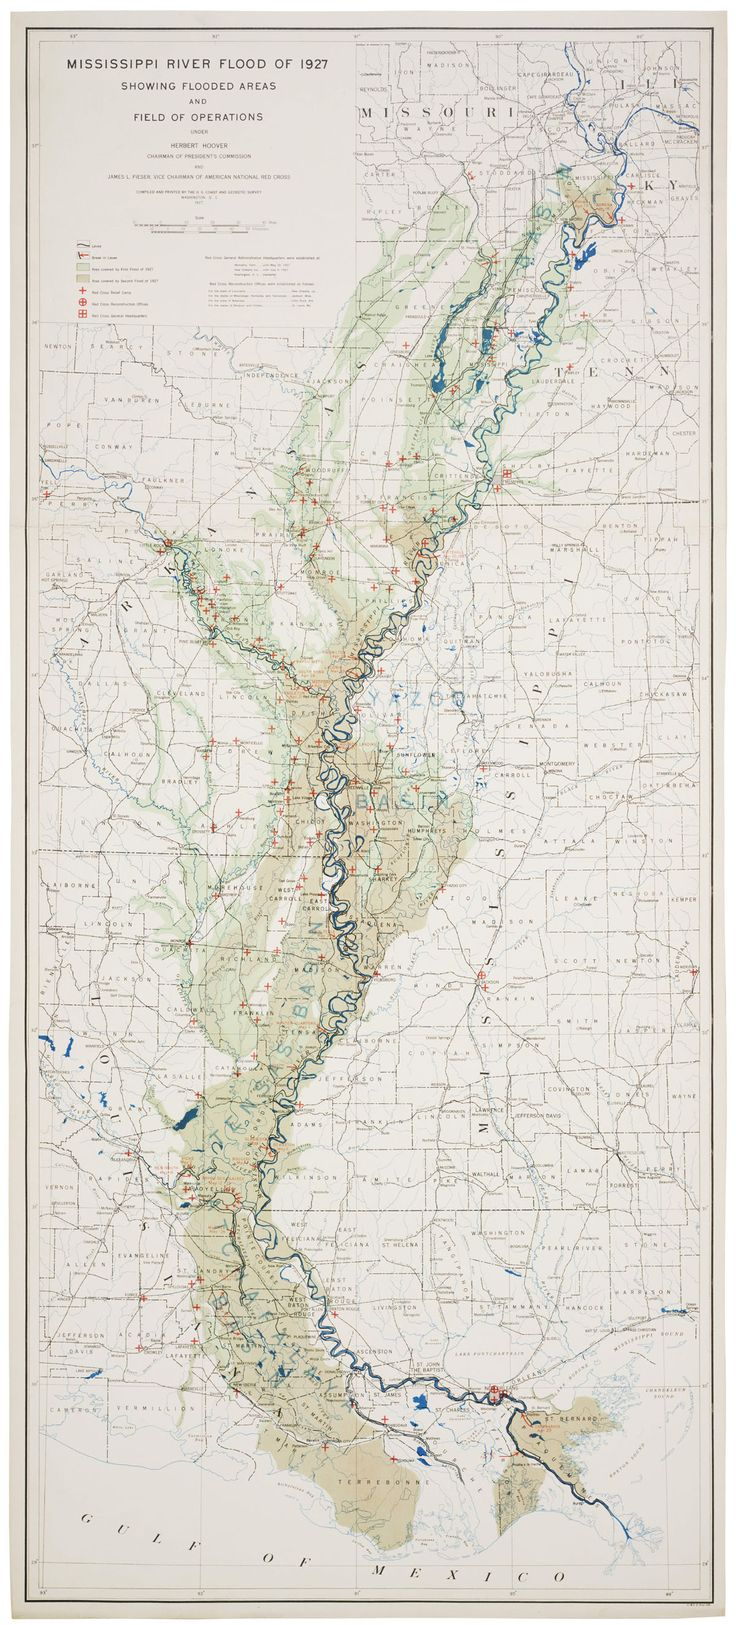 Map: Mississippi River flood of 1927